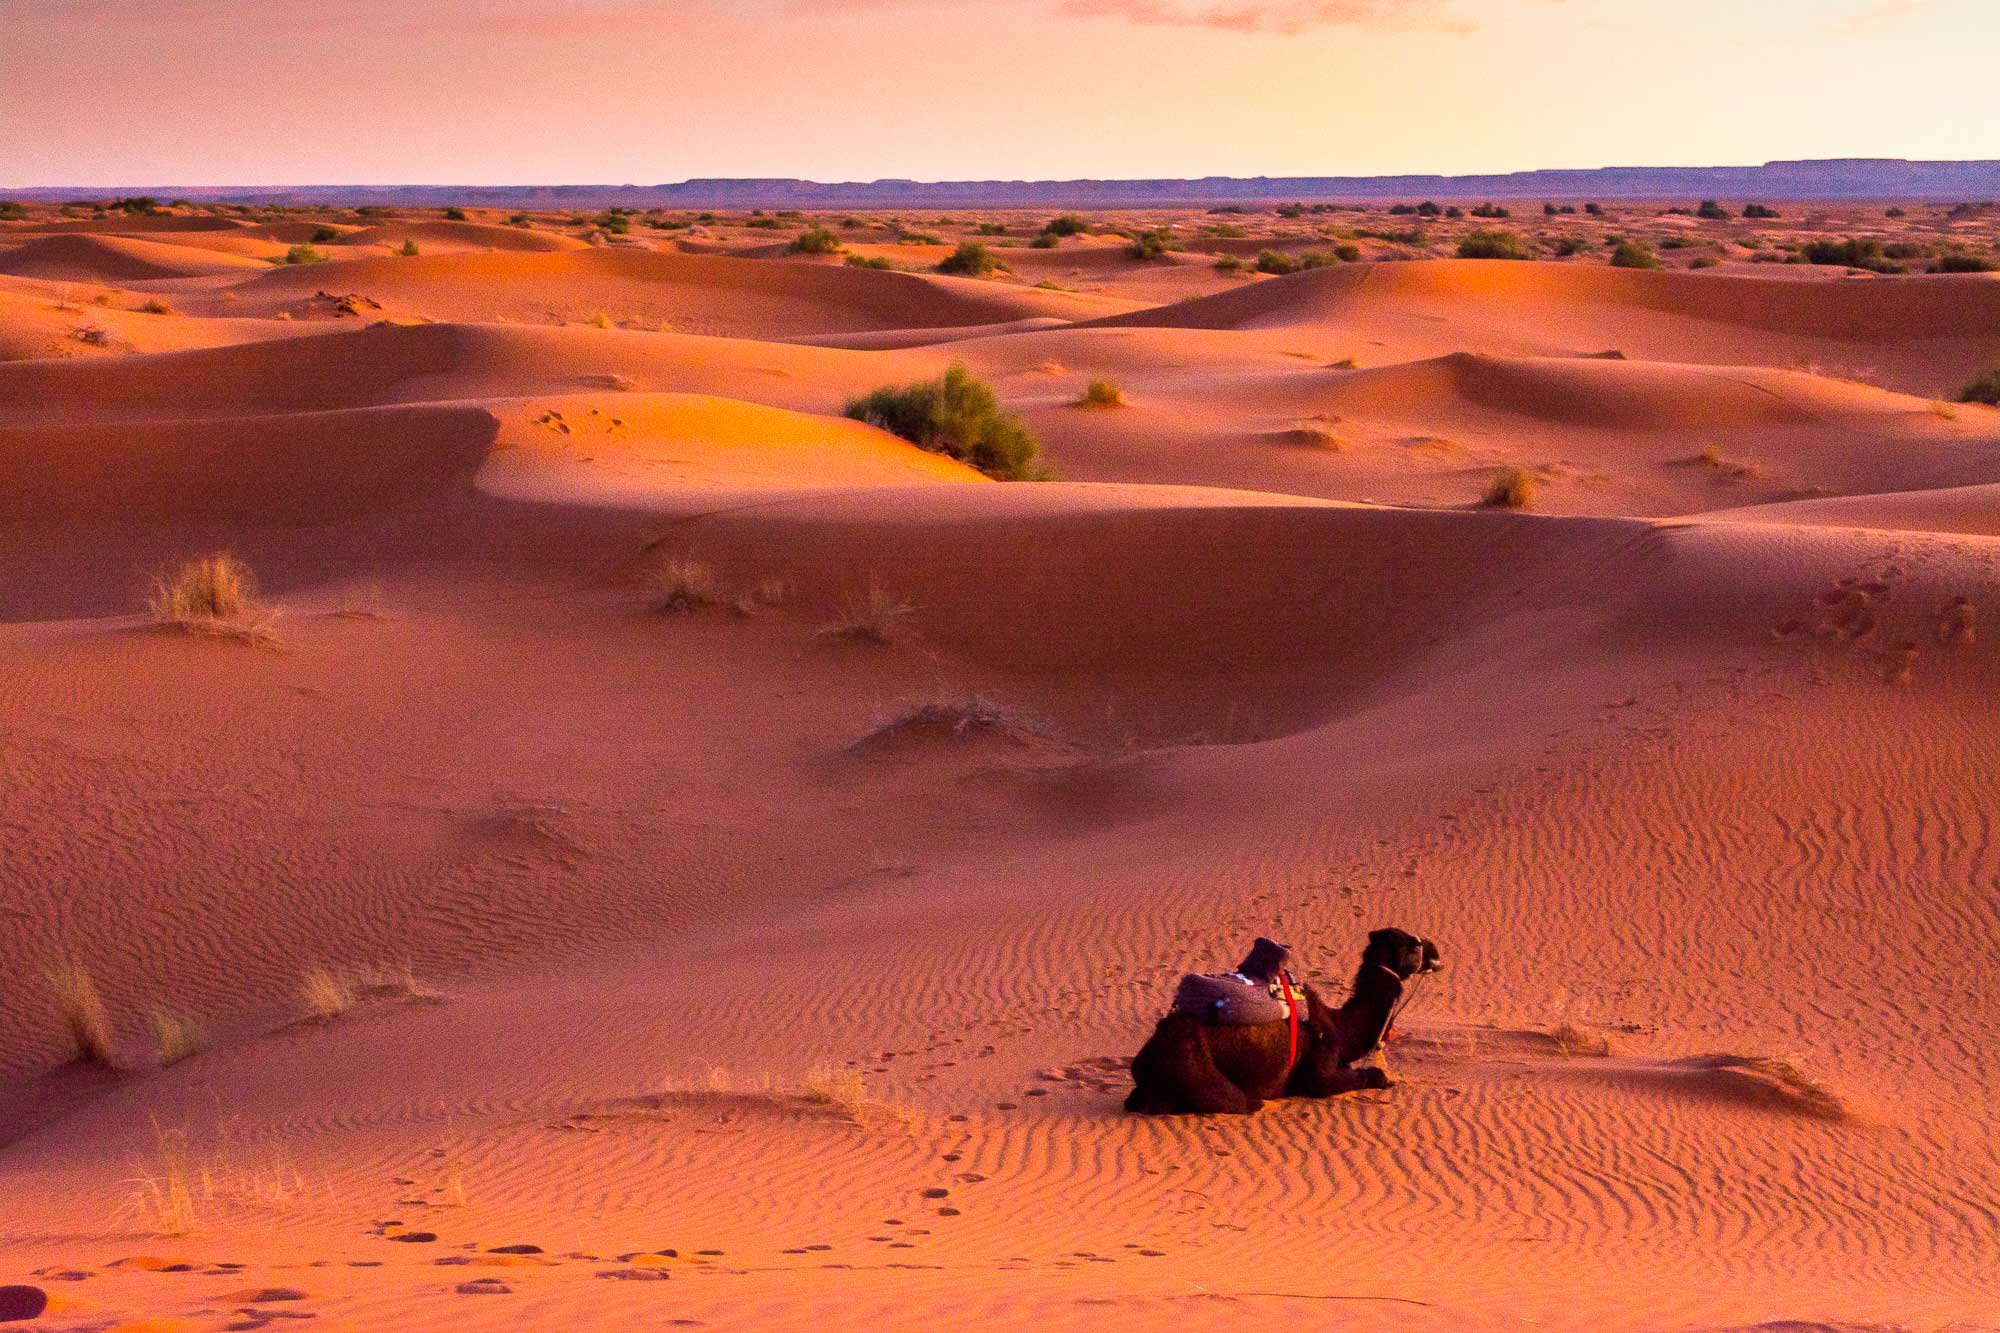 things you should know about traveling to desert